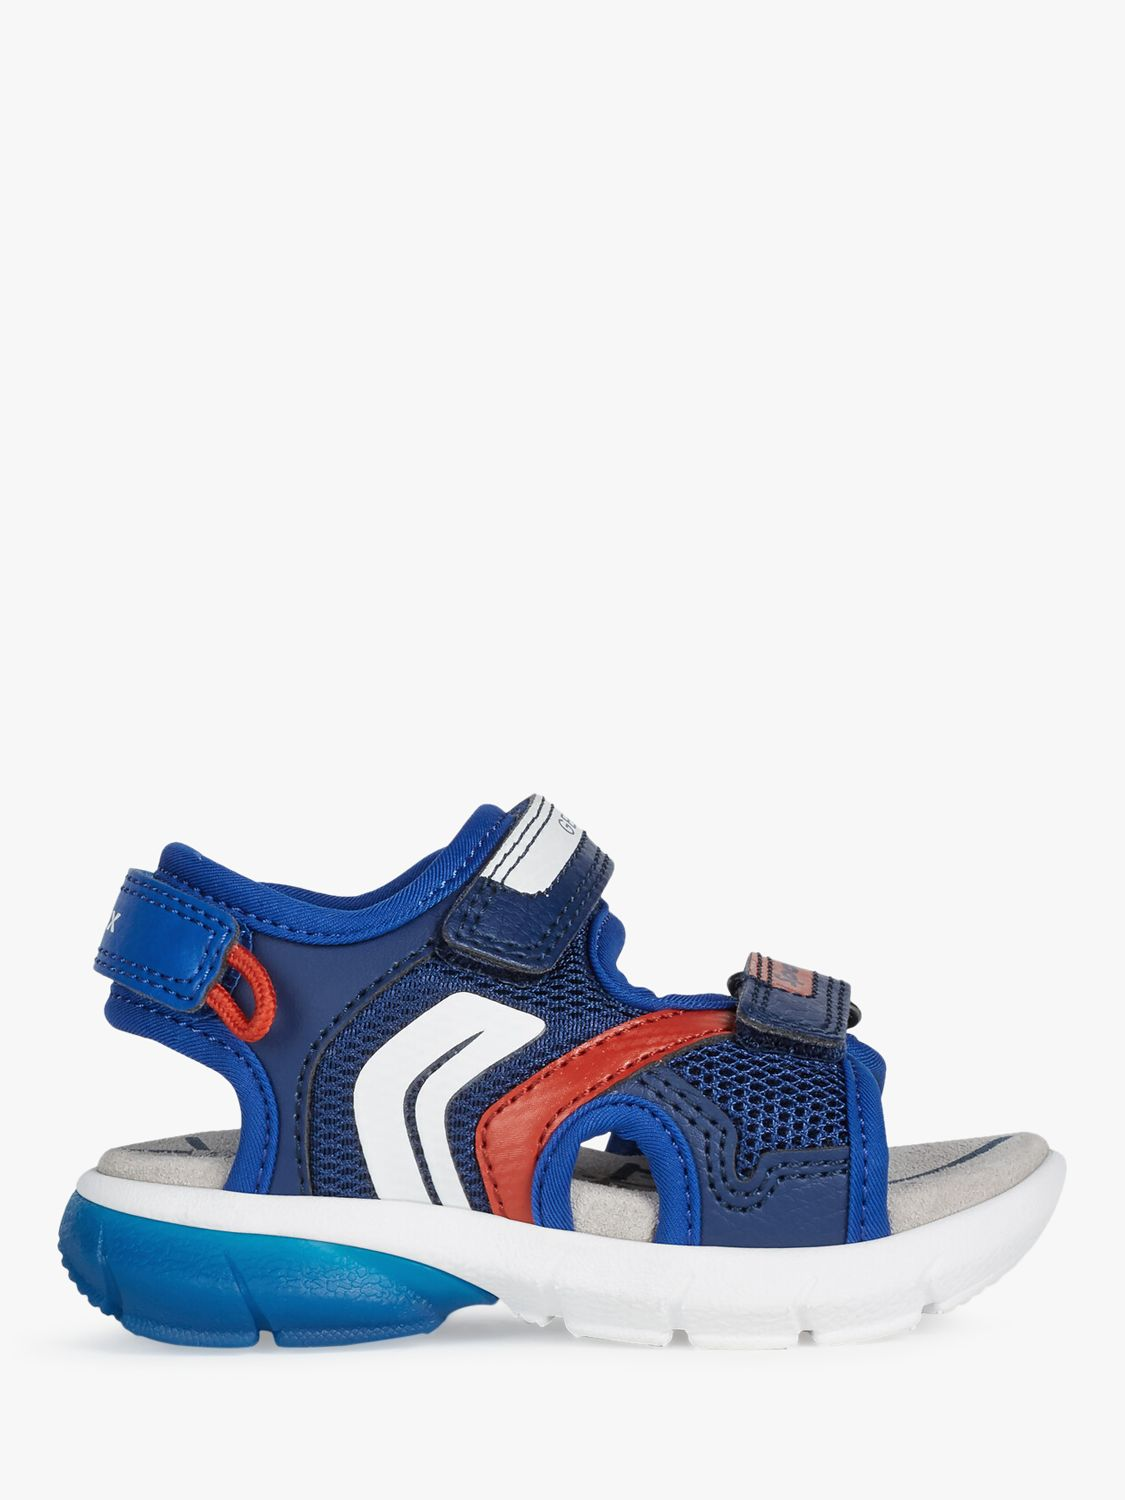 Geox Geox Junior Flexyper Riptape Sandals, Navy/Red